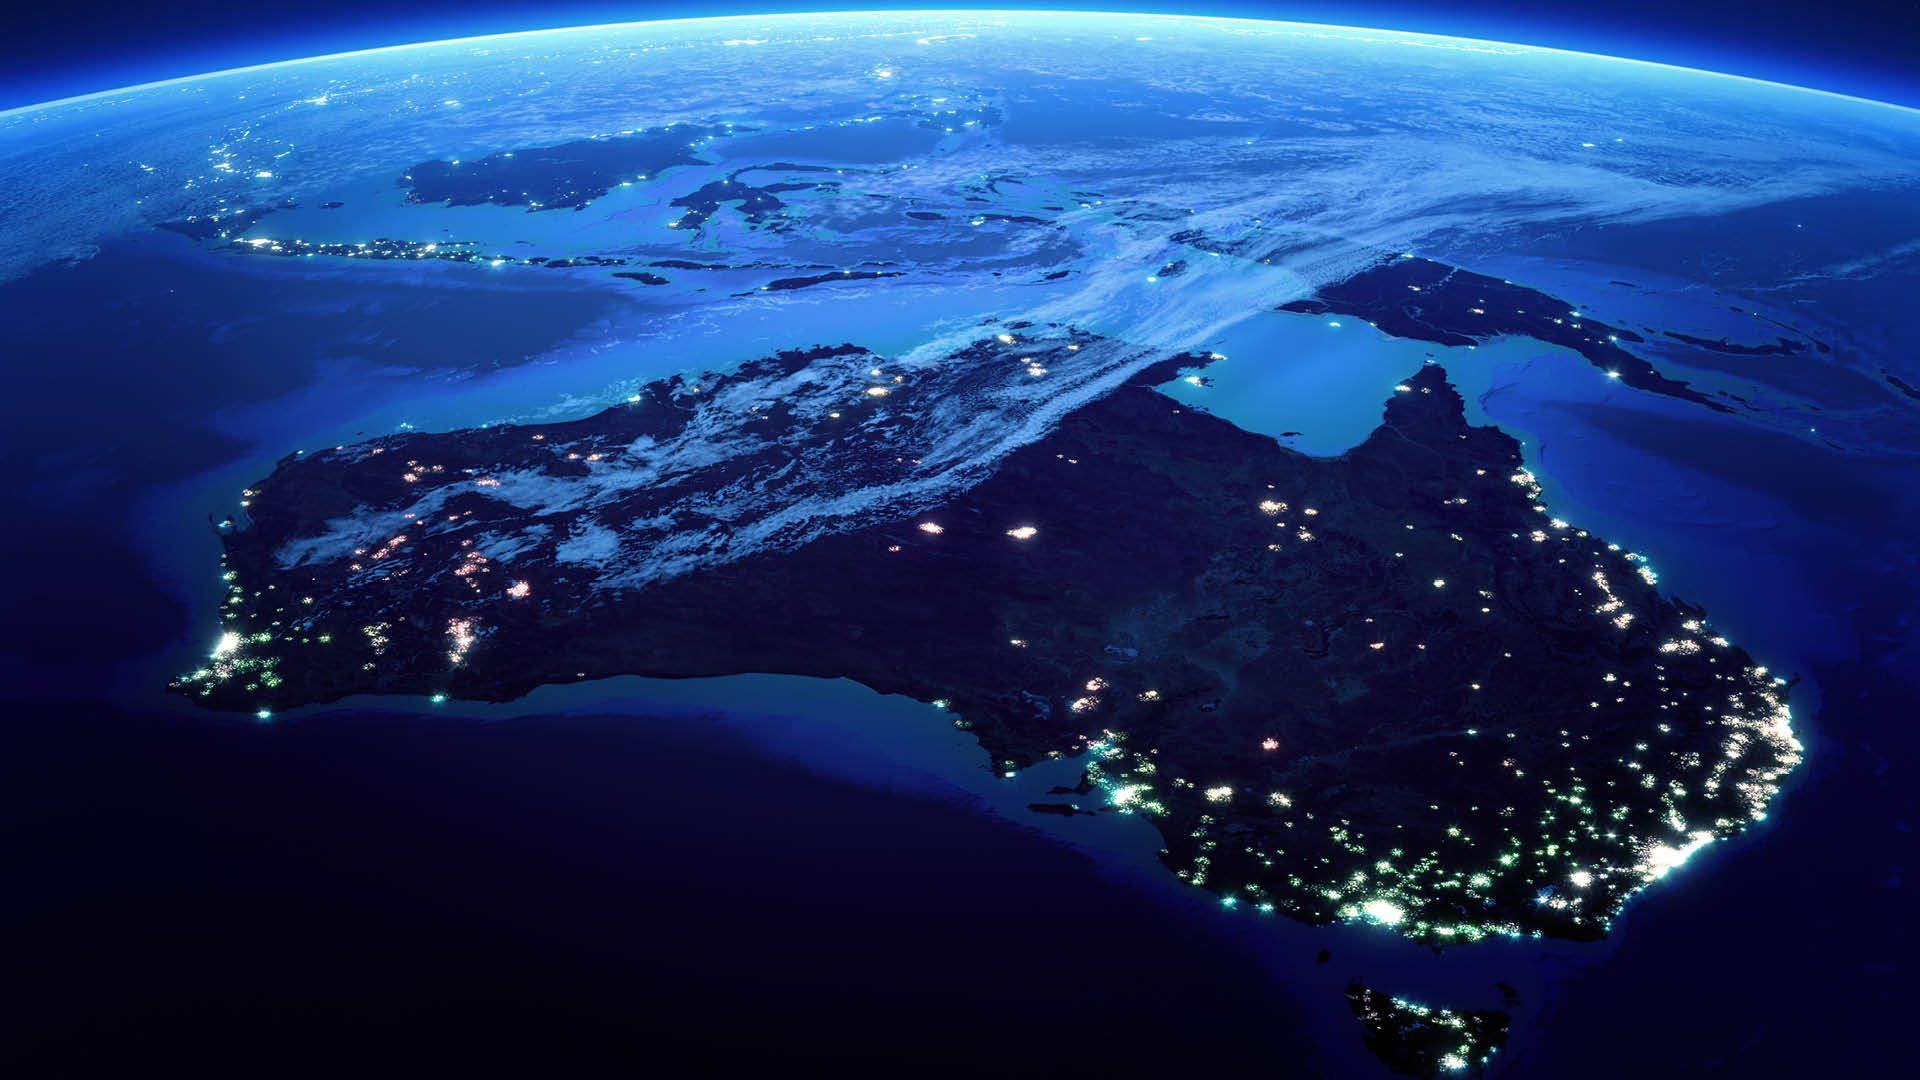 The legal advisor to the consortium behind the world's largest green hydrogen project, Norton Rose Fulbright, explains what it means for Australia and the global energy transition